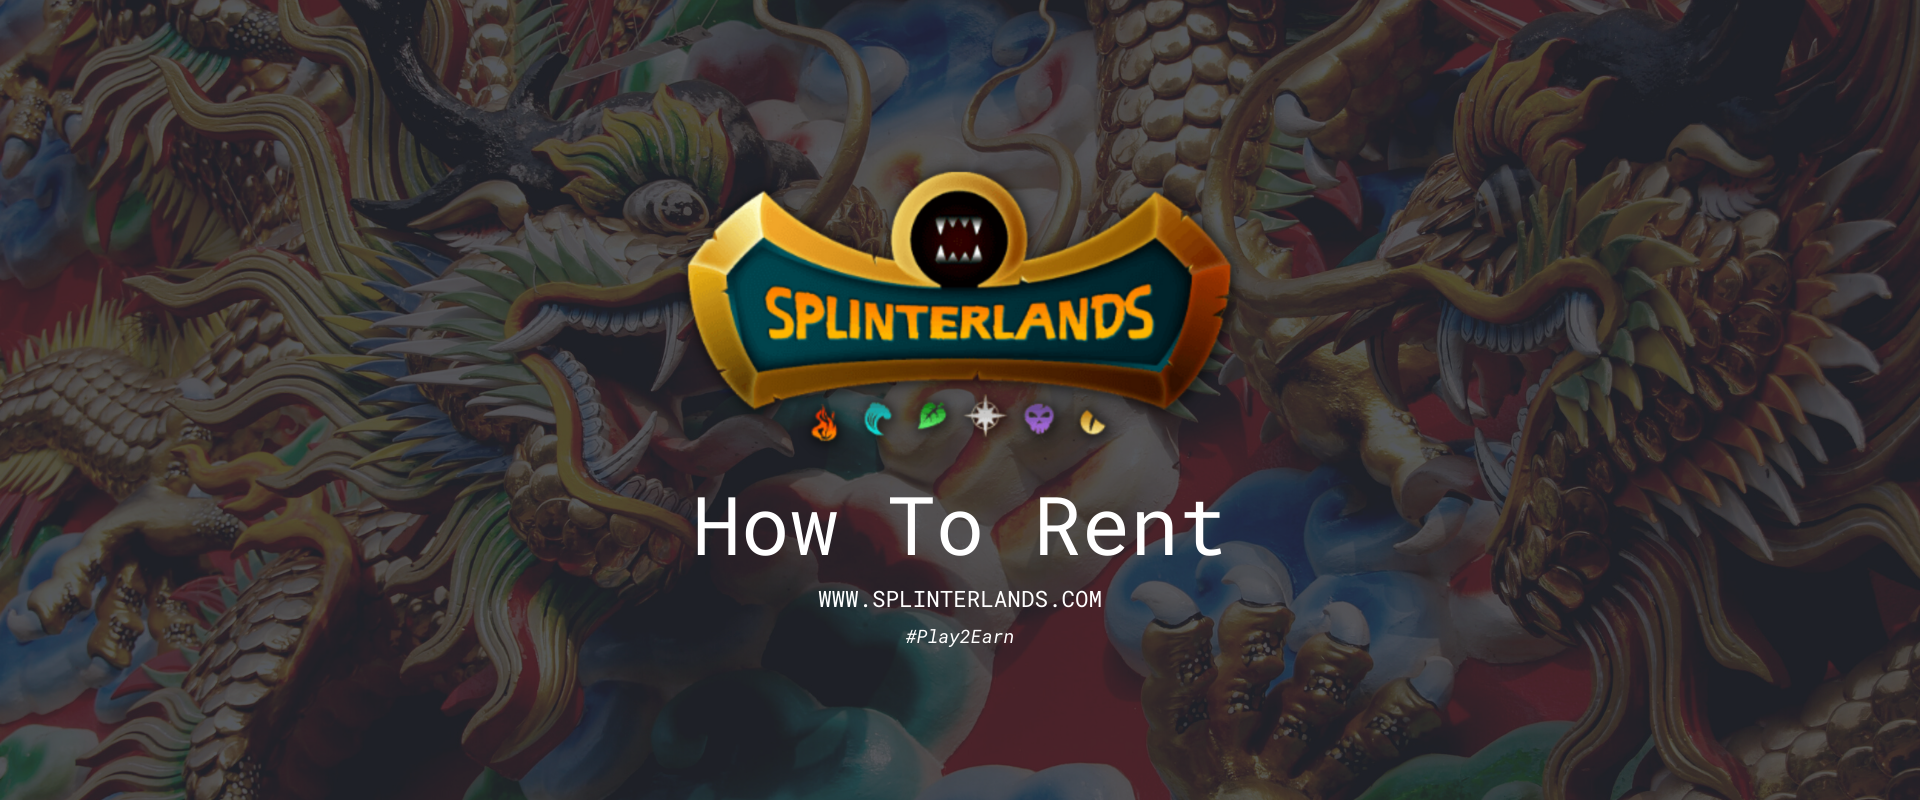 How To Rent.png